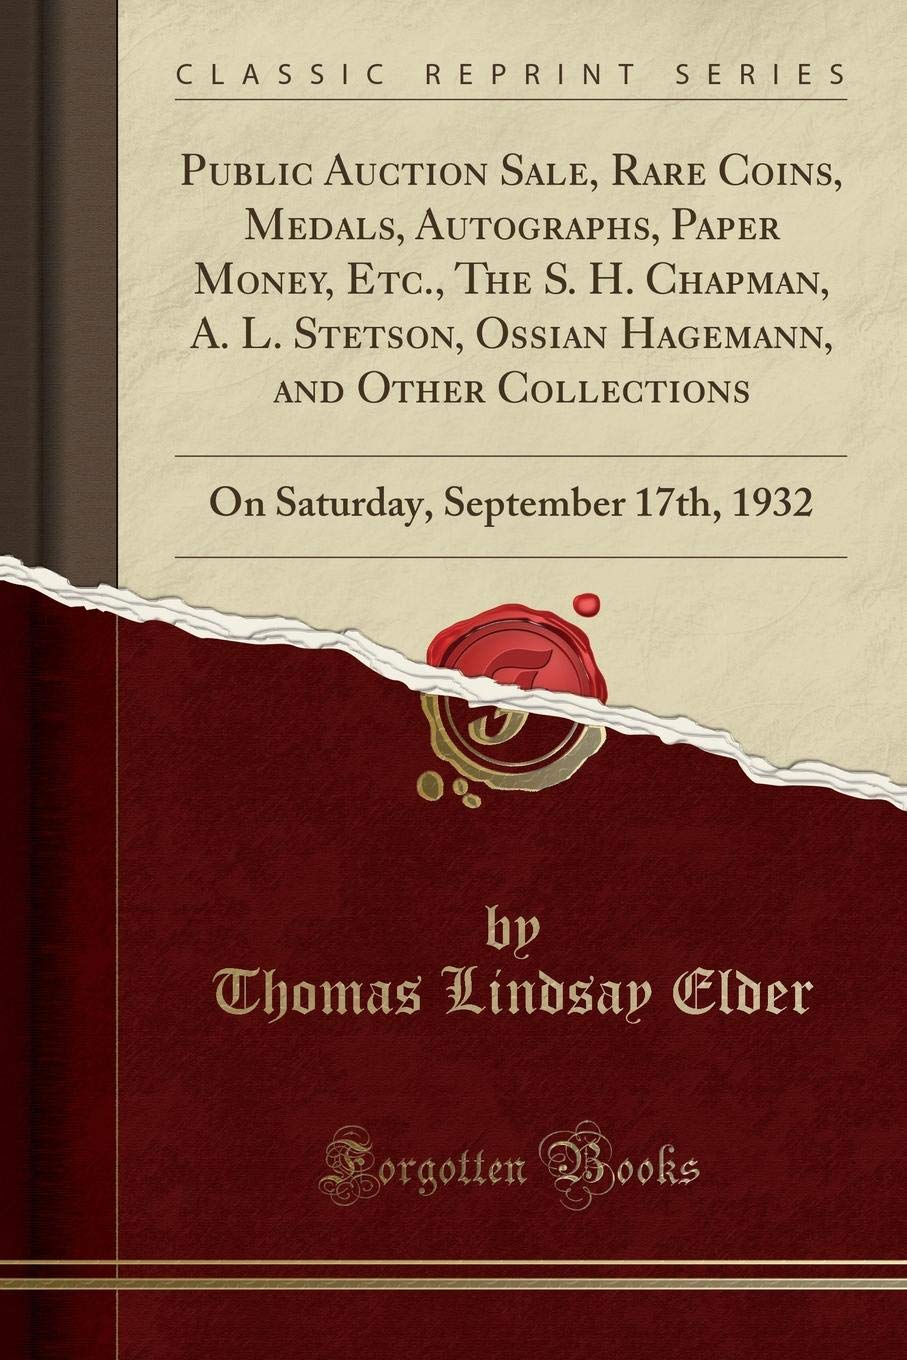 Public Auction Sale, Rare Coins, Medals, Autographs, Paper Money, Etc., The S. H. Chapman, A. L. Stetson, Ossian Hagemann, and Other Collections: On Saturday, September 17th, 1932 (Classic Reprint) pdf